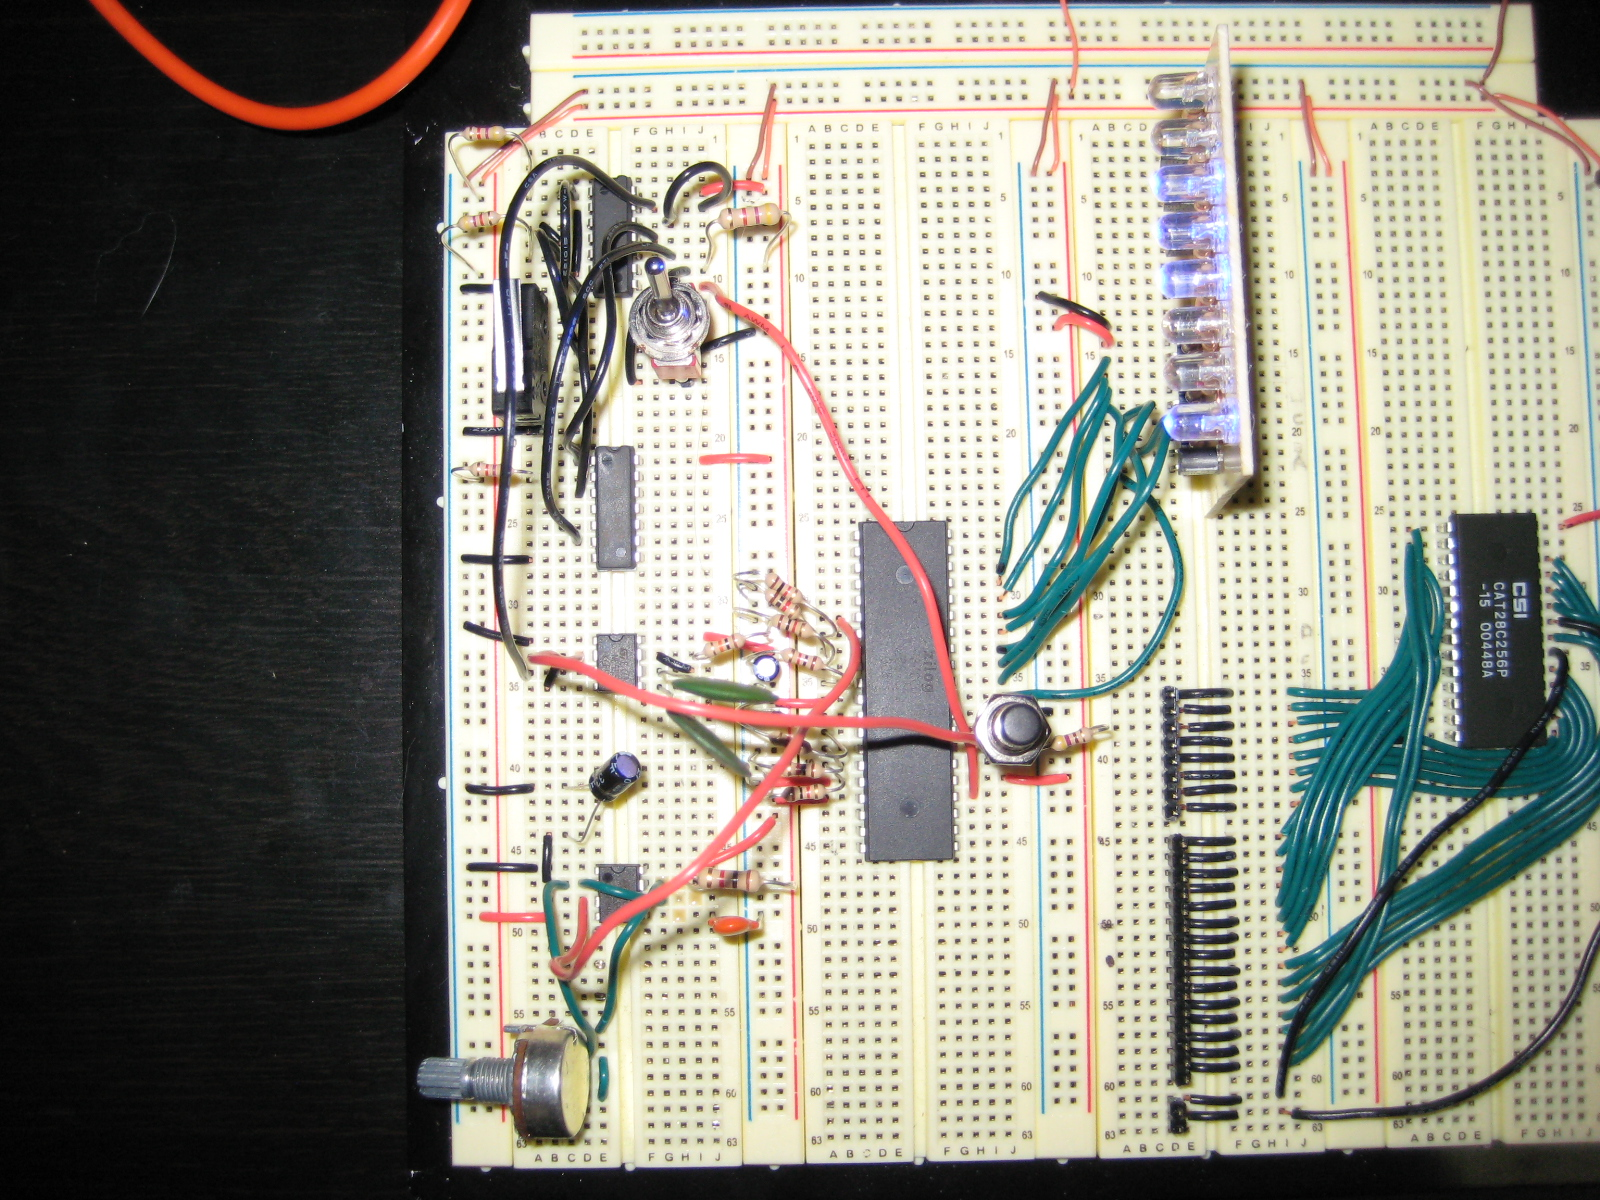 Single Step Instruction Circuit Z80 Computer Project Circuits 8085 Projects Blog Archive 15v Led Flashlight Share This